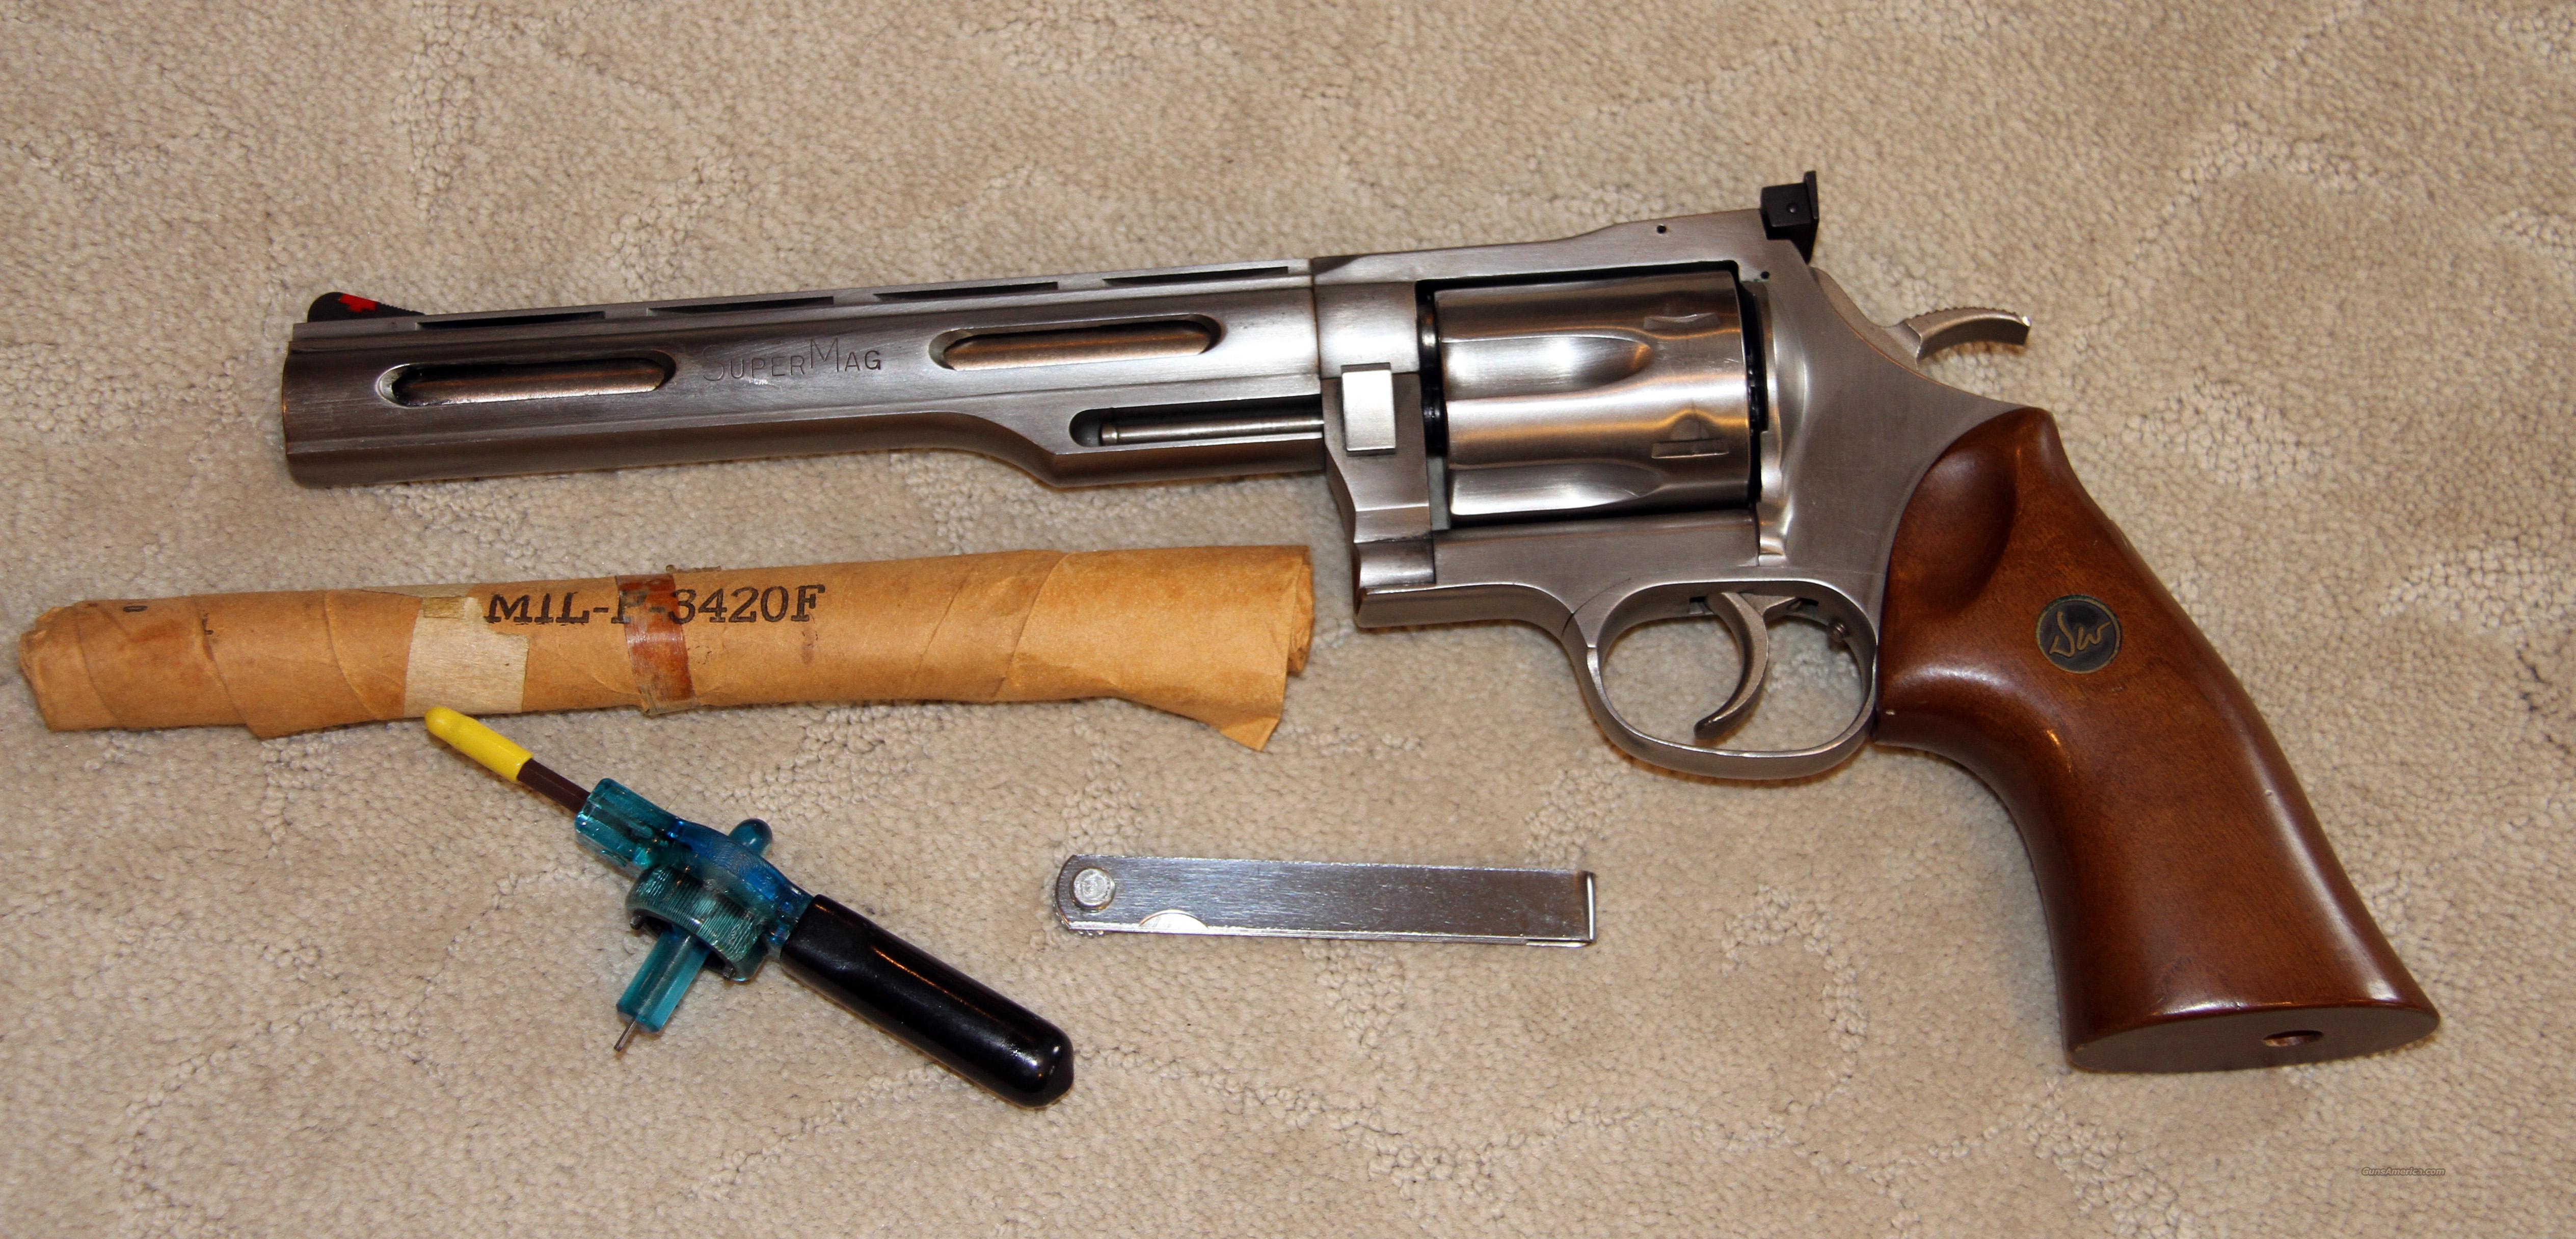 Like New Dan Wesson 357 Super Mag (Maximum)   Guns > Pistols > Dan Wesson Pistols/Revolvers > Revolvers